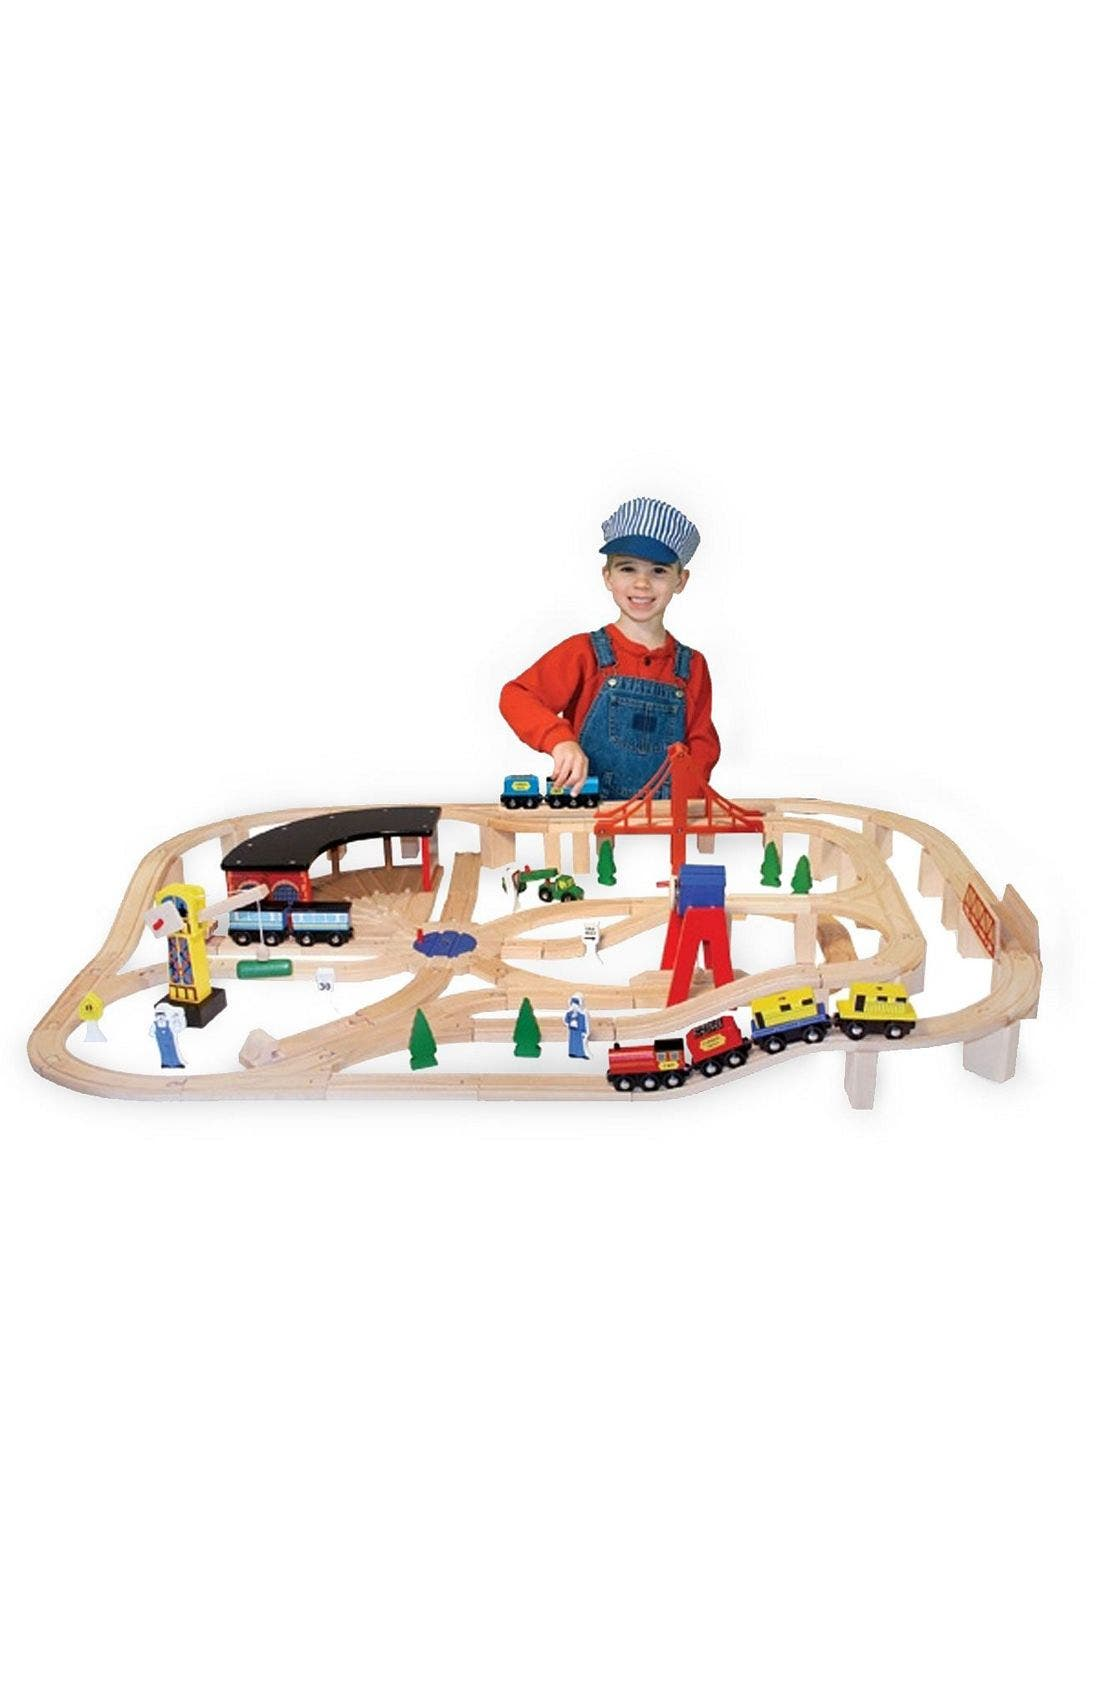 132-Piece Wooden Railway Set,                         Main,                         color, WOODEN RAILWAY SET